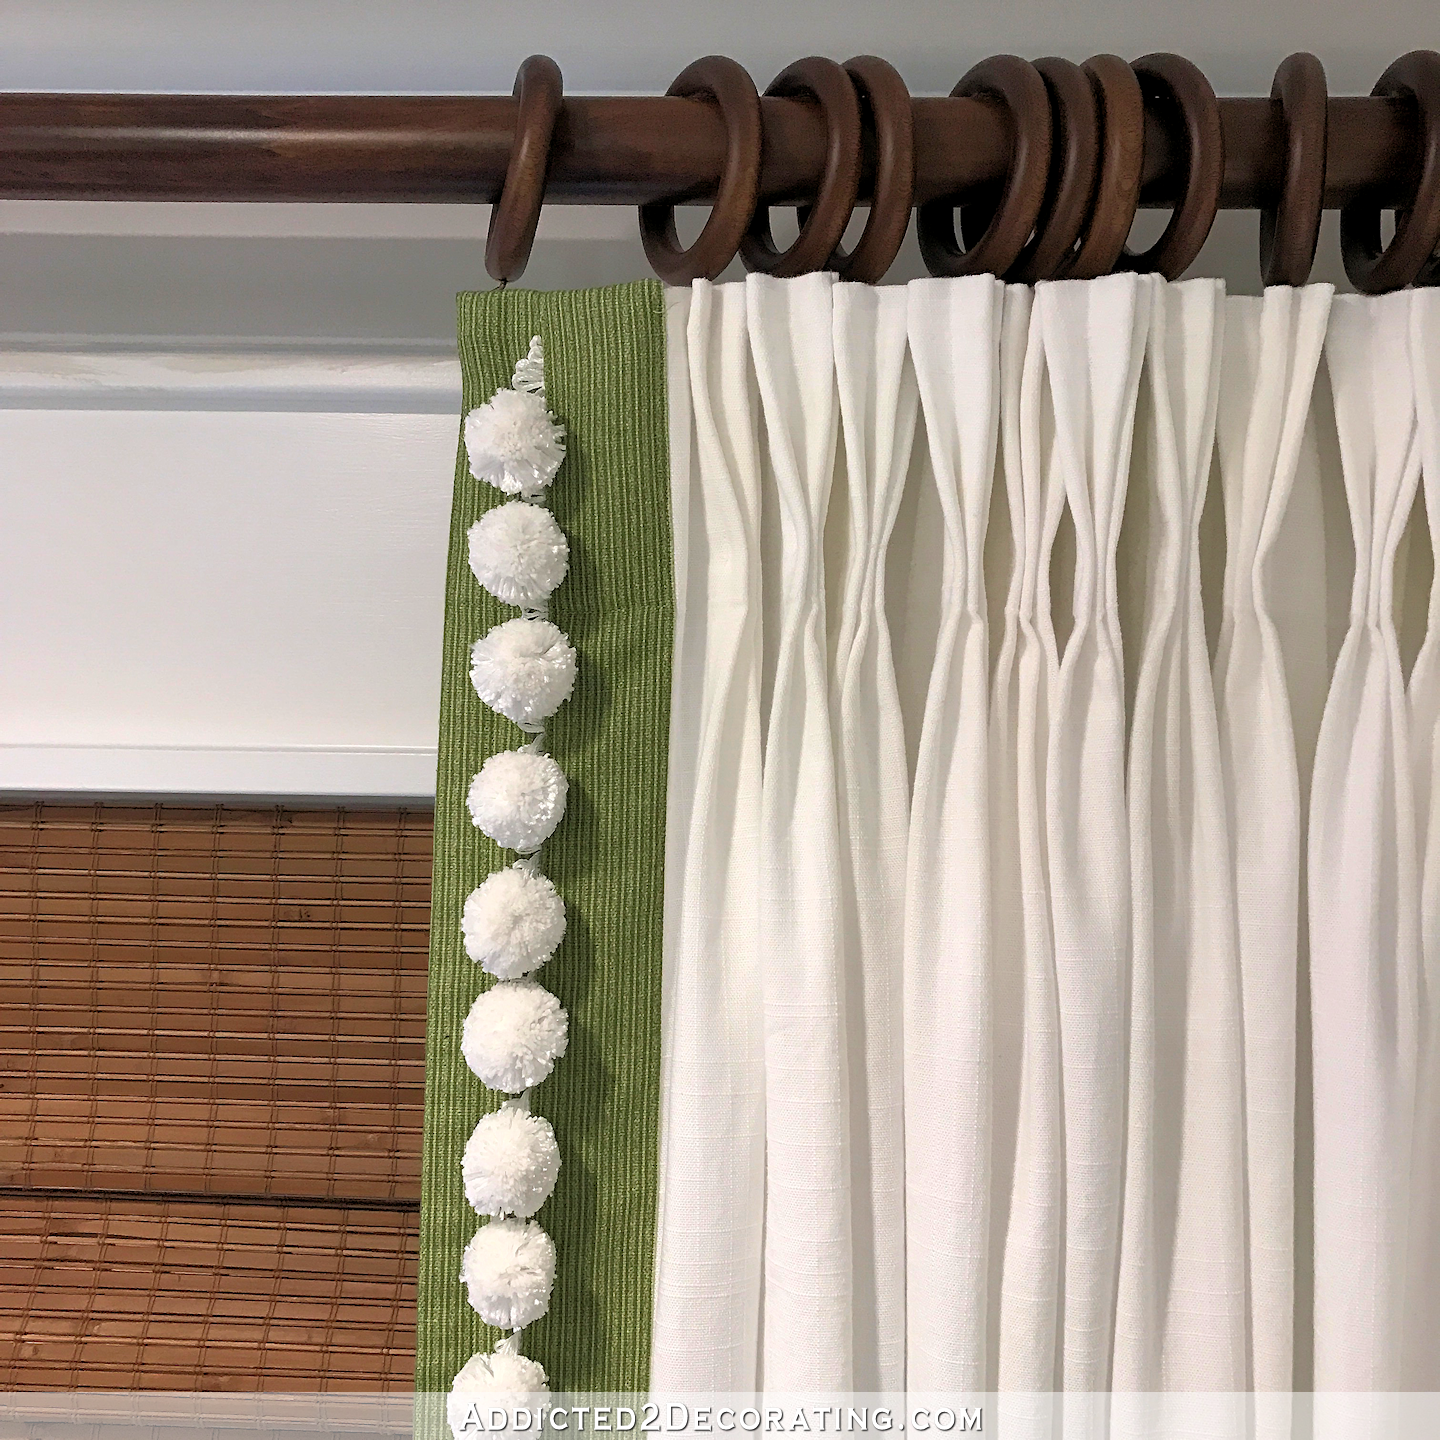 Ikea Ritva Curtains Customized With Contrast Edge Band Pompom Trim And Pinch Pleats Addicted 2 Decorating Curtain Trim Curtains With Blinds Bedroom Blinds